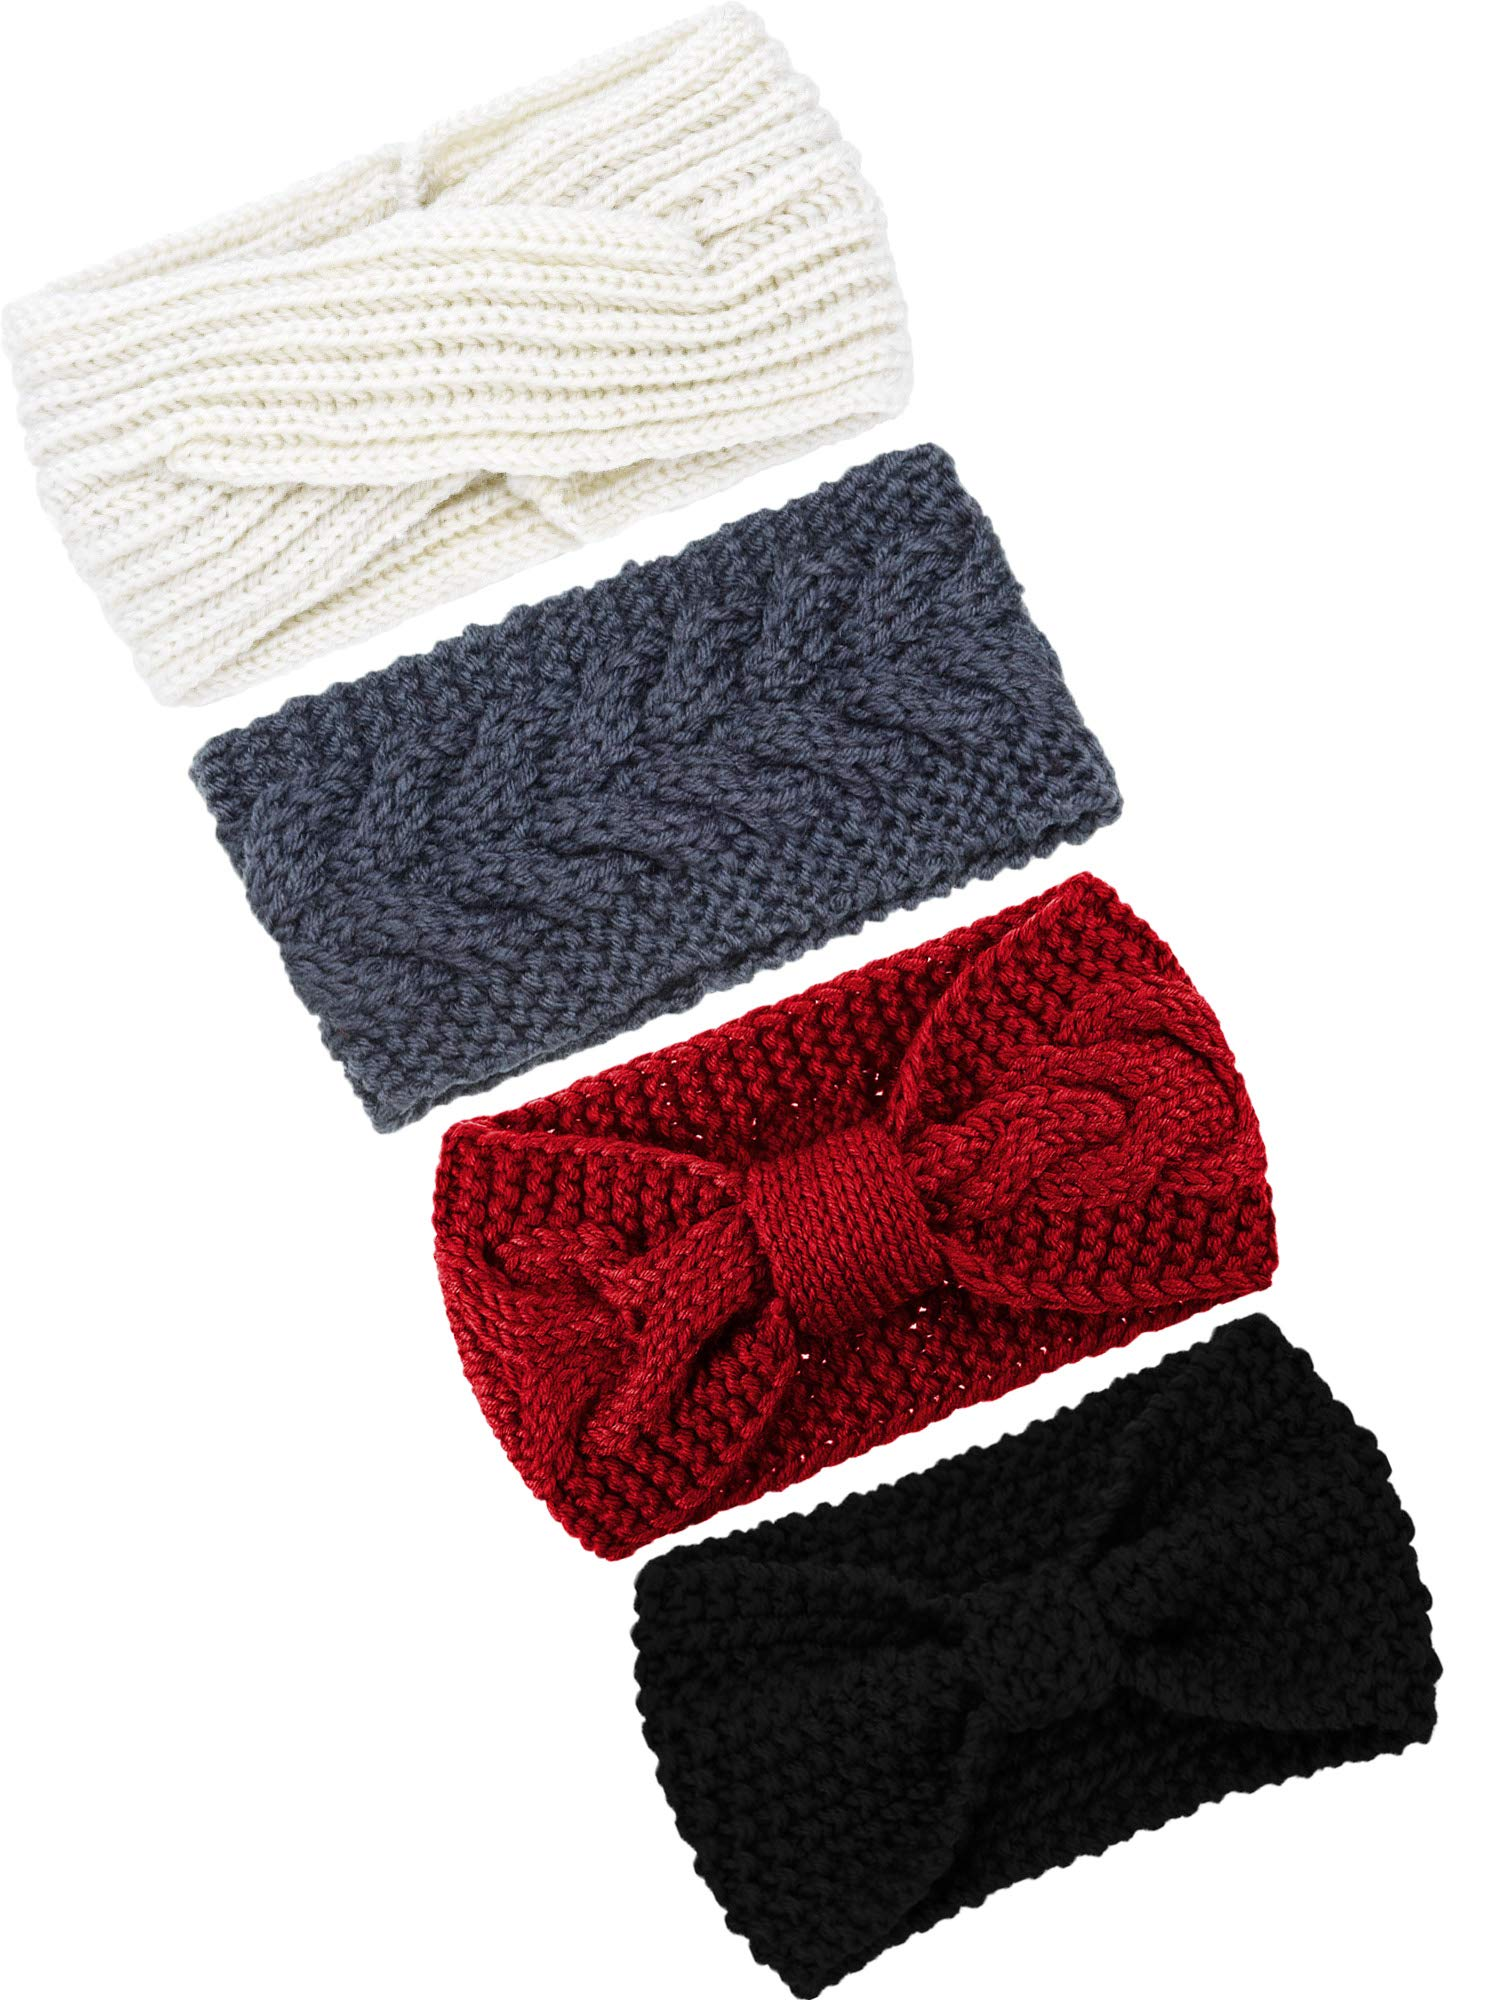 TecUnite 4 Pieces Chunky Knit Headbands Winter Braided Headband Ear Warmer Crochet Head Wraps for Women Girls (Color set 6)